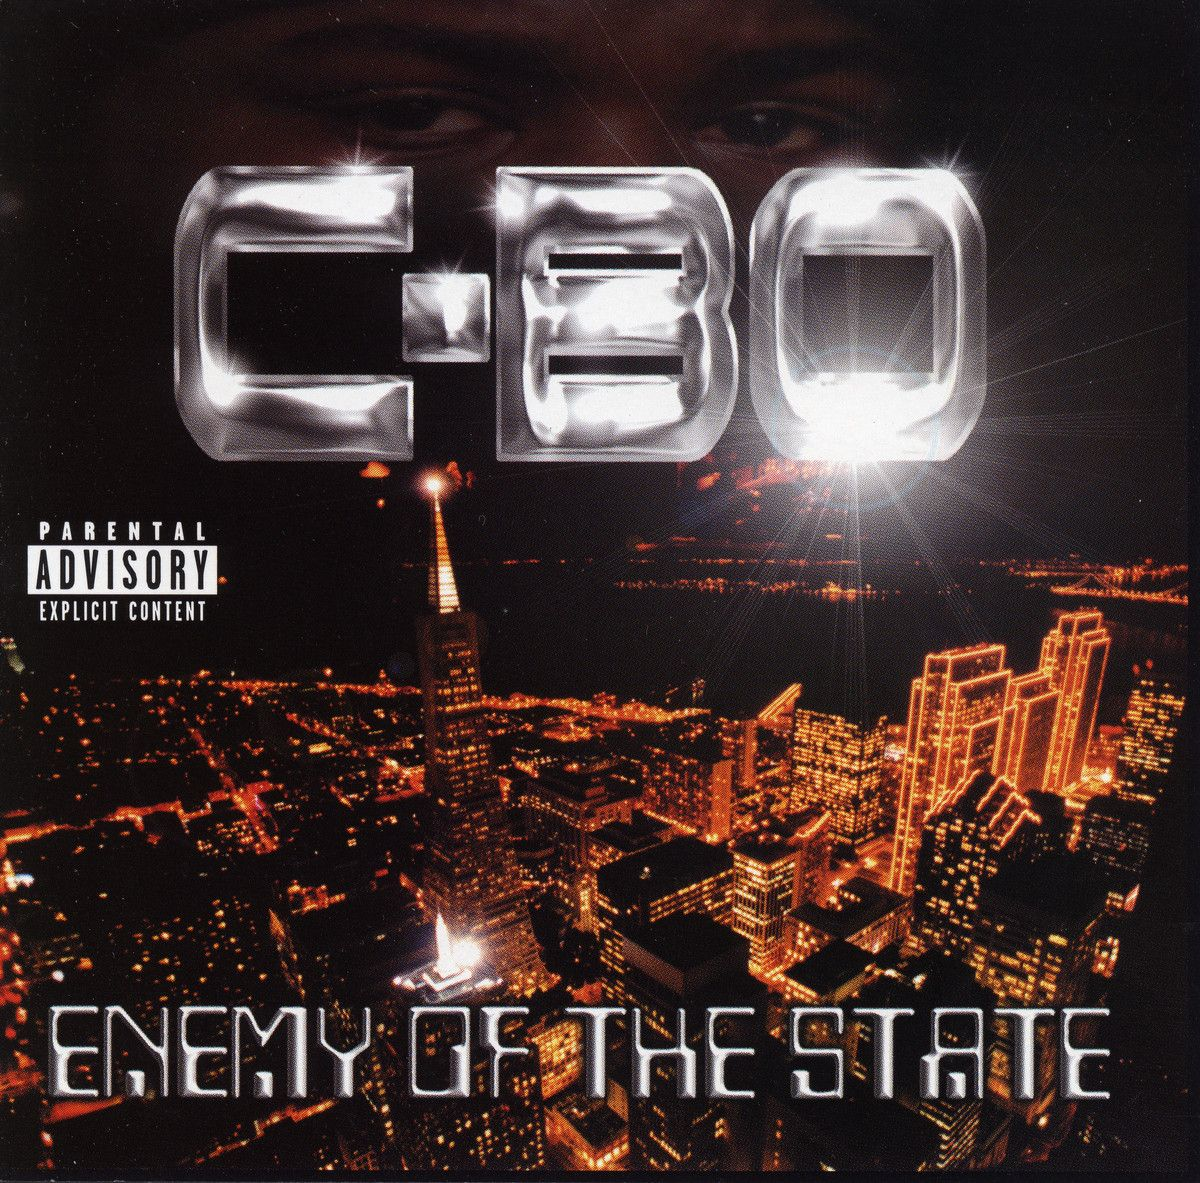 c-bo the mobfather